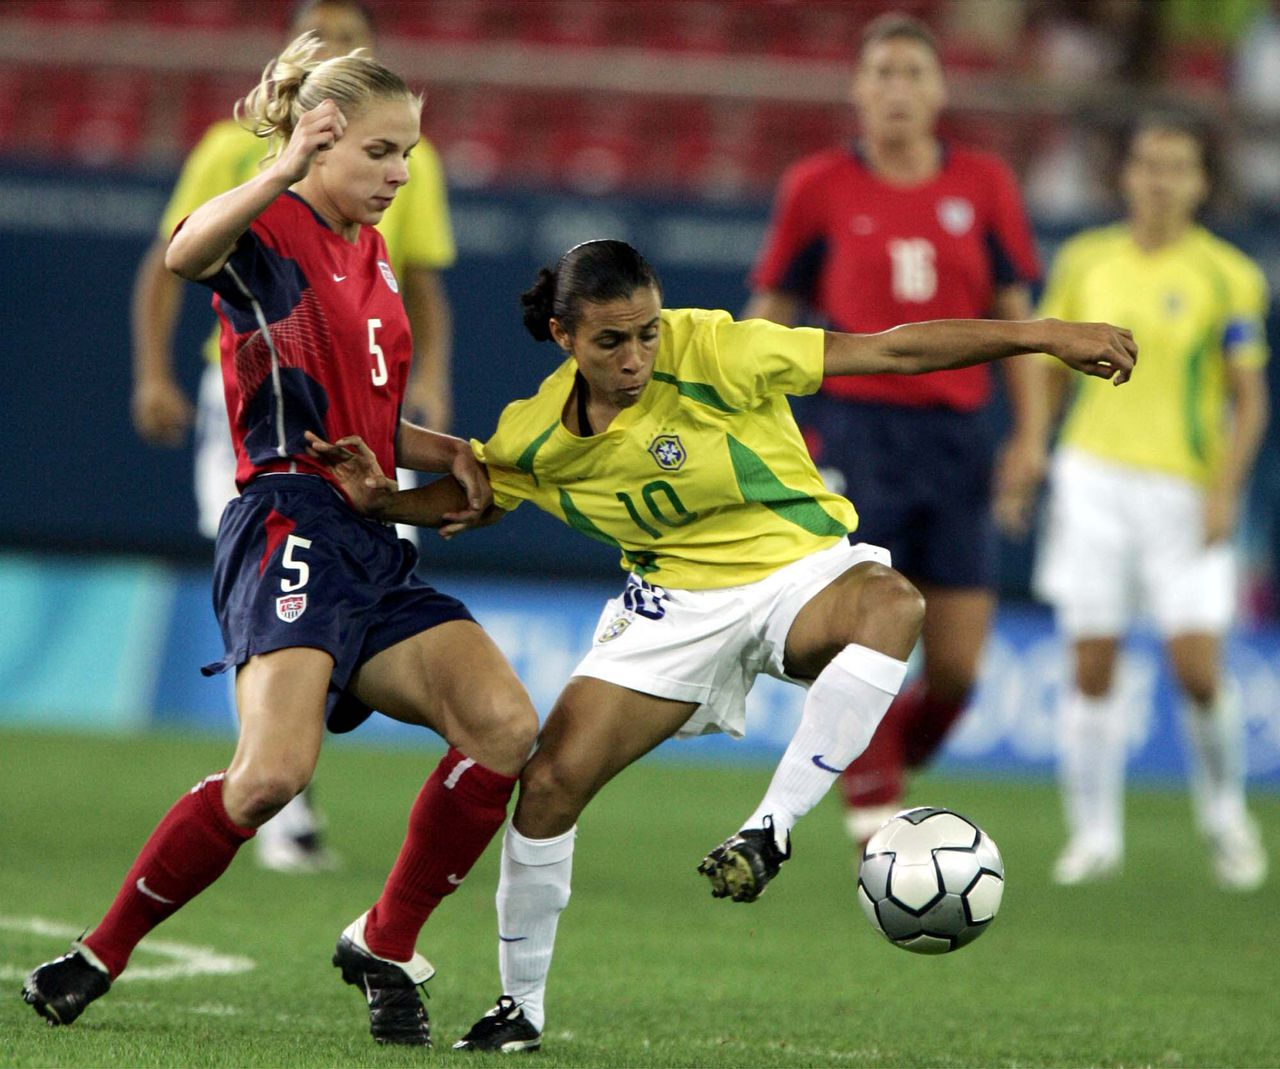 Wereldvoetbalster van het jaar Marta aan de bal tegen Amerika in de olympische finale van 2004. Foto AP ** FILE ** Brazil's Marta, right, and USA's Linsdsay Tarpley go for the ball during a gold medal women soccer game between USA and Brazil for the Athens 2004 Olympics at the Karaiskaki stadium in Athens, on Thursday Aug. 26, 2004. Fabio Cannavaro of Italy and Brazilian Marta have been crowned the F.I.F.A. World Player and the F.I.F.A. Women's World Player respectively for the year 2006 in a gala awards ceremony held in Zurich, Switzerland Monday Dec. 18 2006. (AP Photo/Kevork Djansezian)